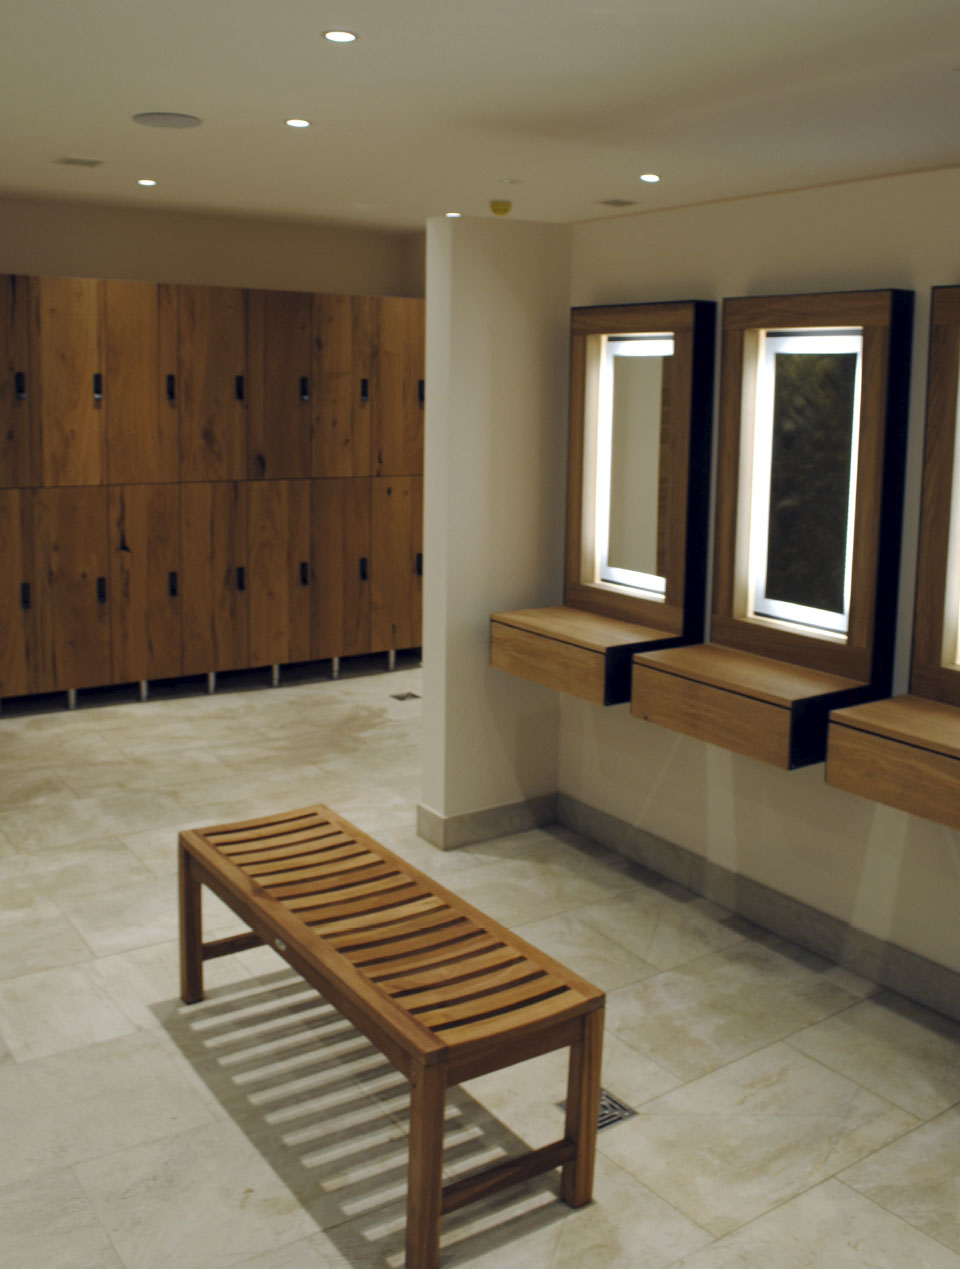 Butterscotch-Spa-Design-rustic-wood-clad-lockers